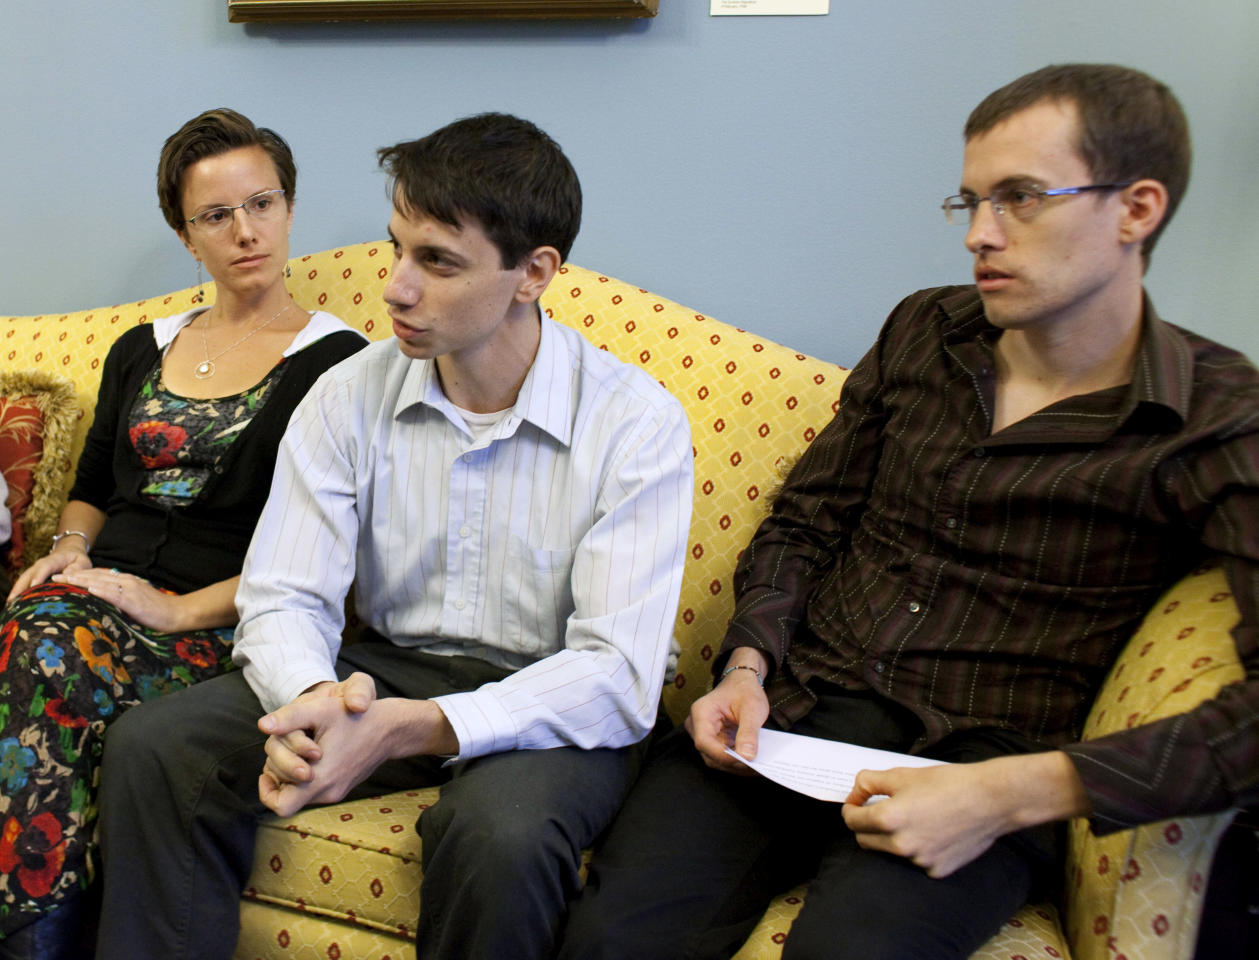 From left, Sarah Shourd, Josh Fattel and Shane Bauer , hikers who was imprisoned in Iran, center, meet with Sen. Al Franken, D-Minn., and Sen. Robert Casey, D-Pa., Not shown, Wednesday, Oct. 12,2011, on Capitol Hill in Washington, Wednesday, Oct. 12, 2011. (AP Photo/Harry Hamburg)